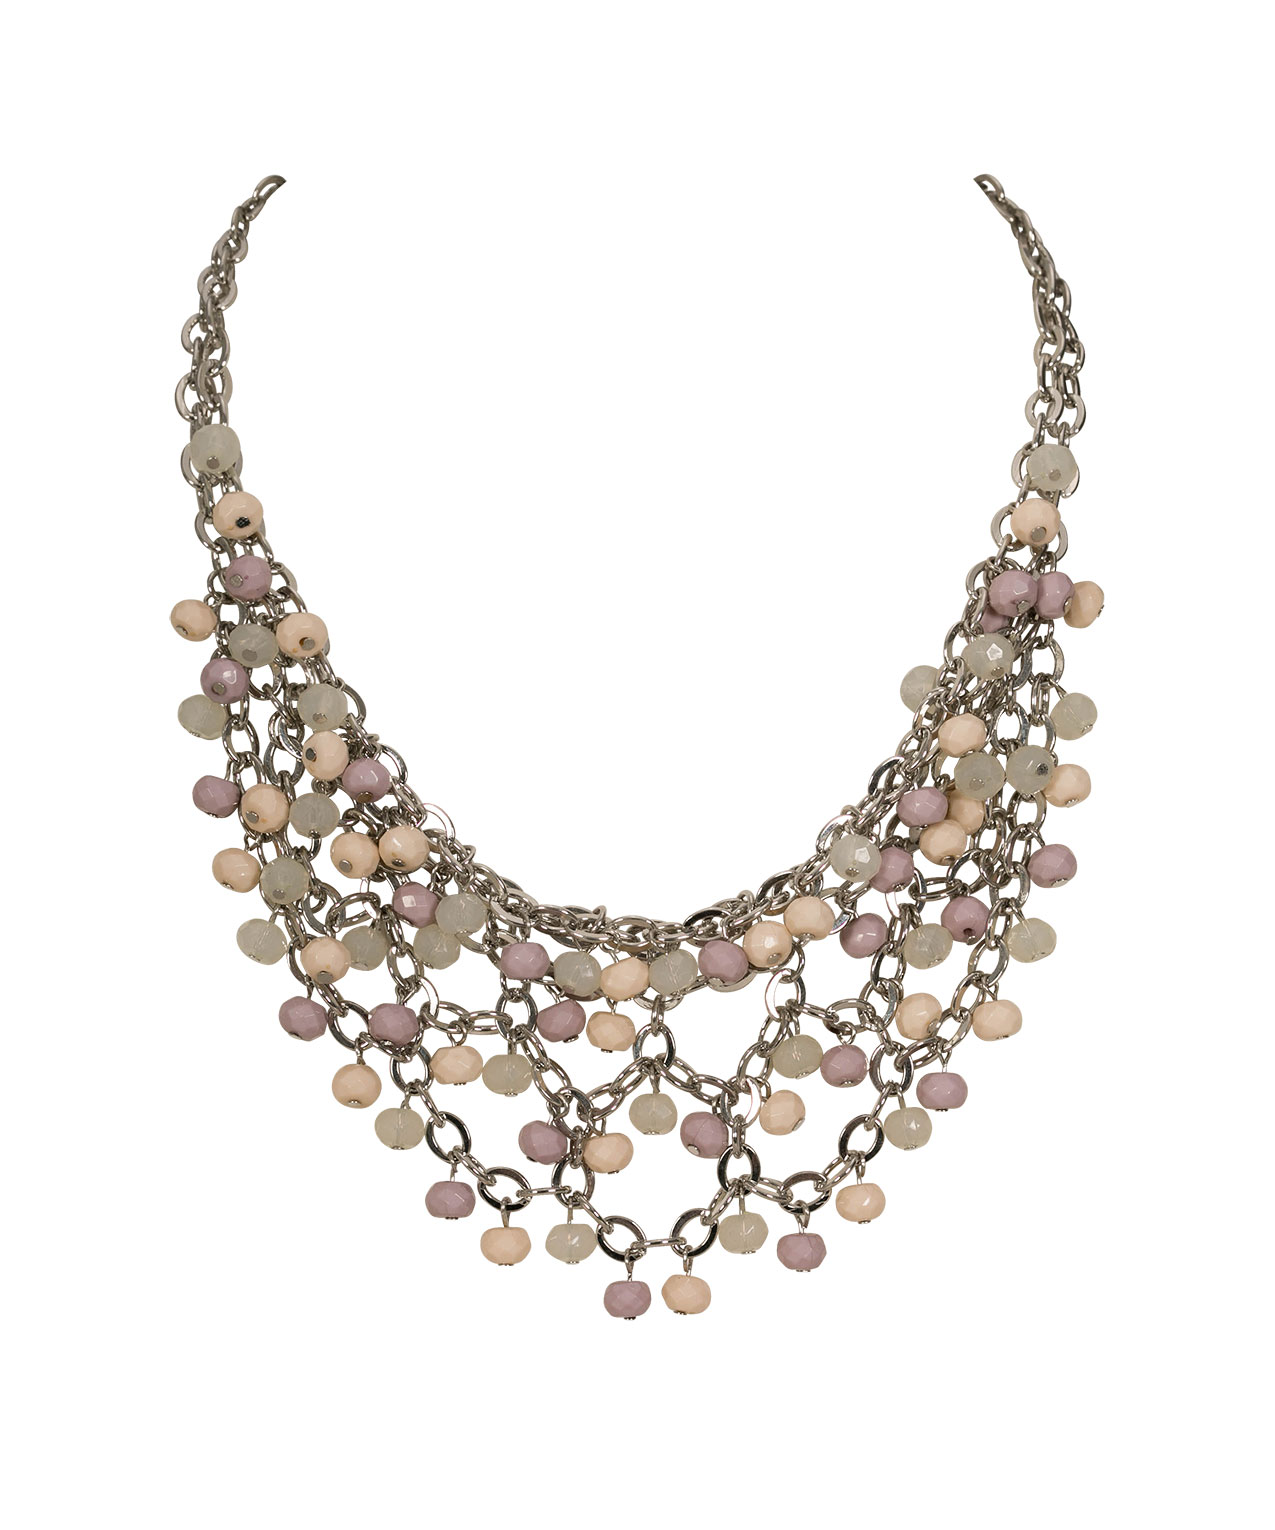 Faceted Stone Cluster Statement Necklace, Iced Violet/Milkshake/Rhodium, hi-res